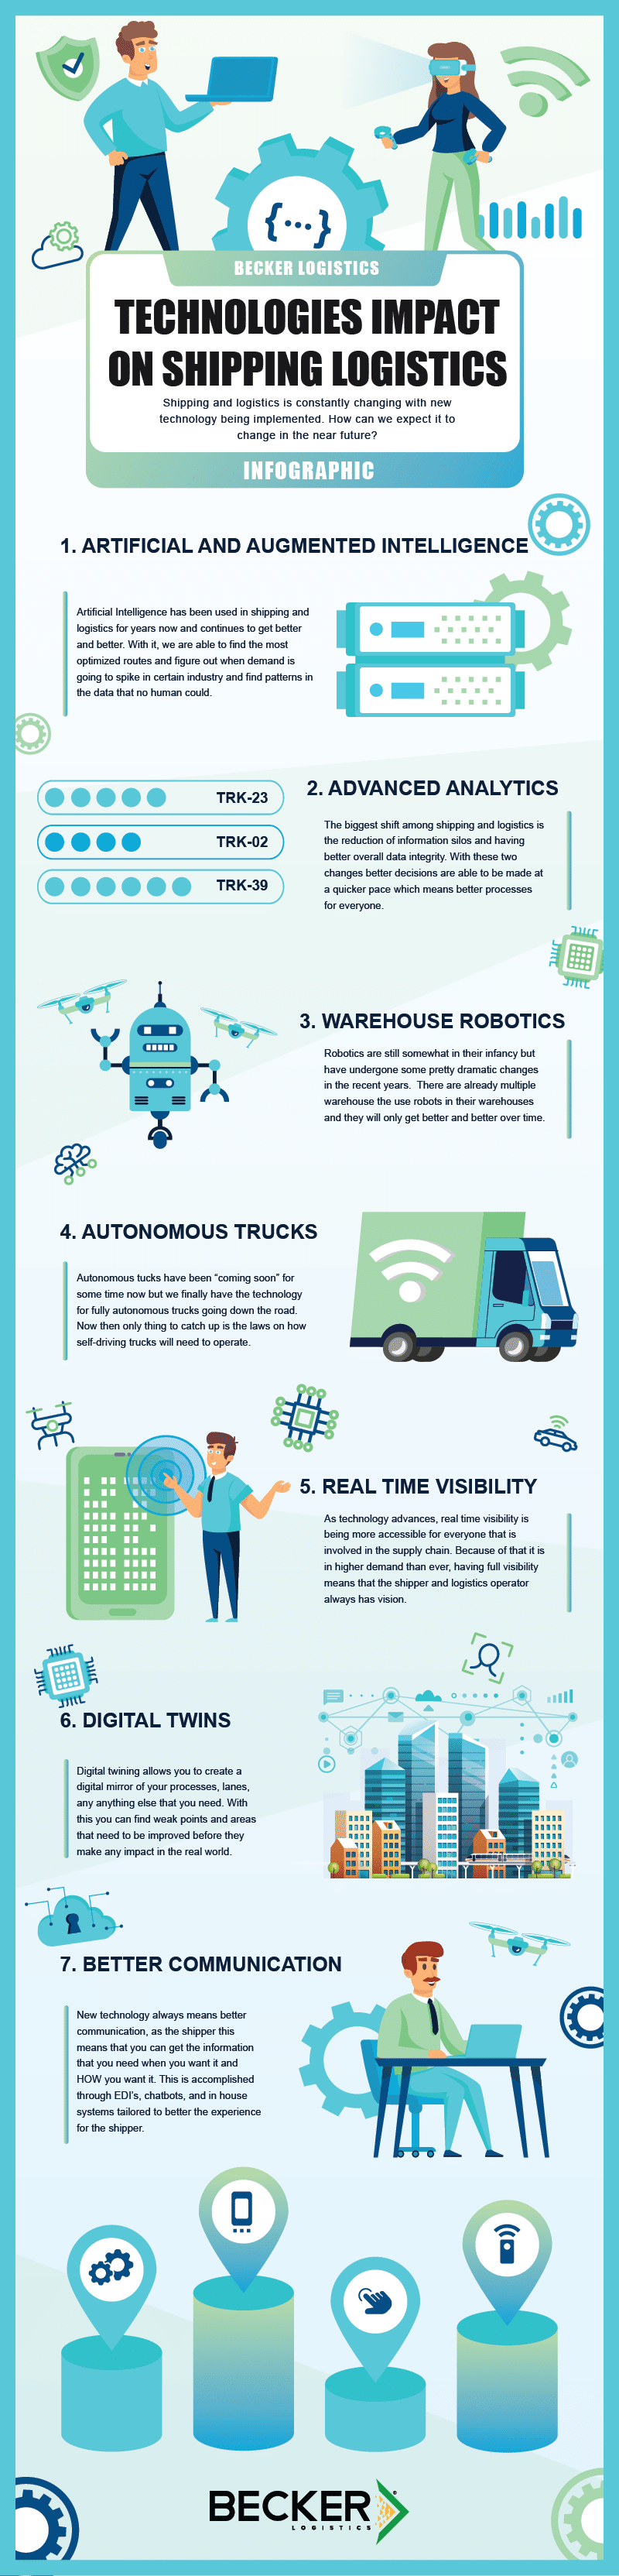 Technologies Impact on Shipping Logistics Infographic